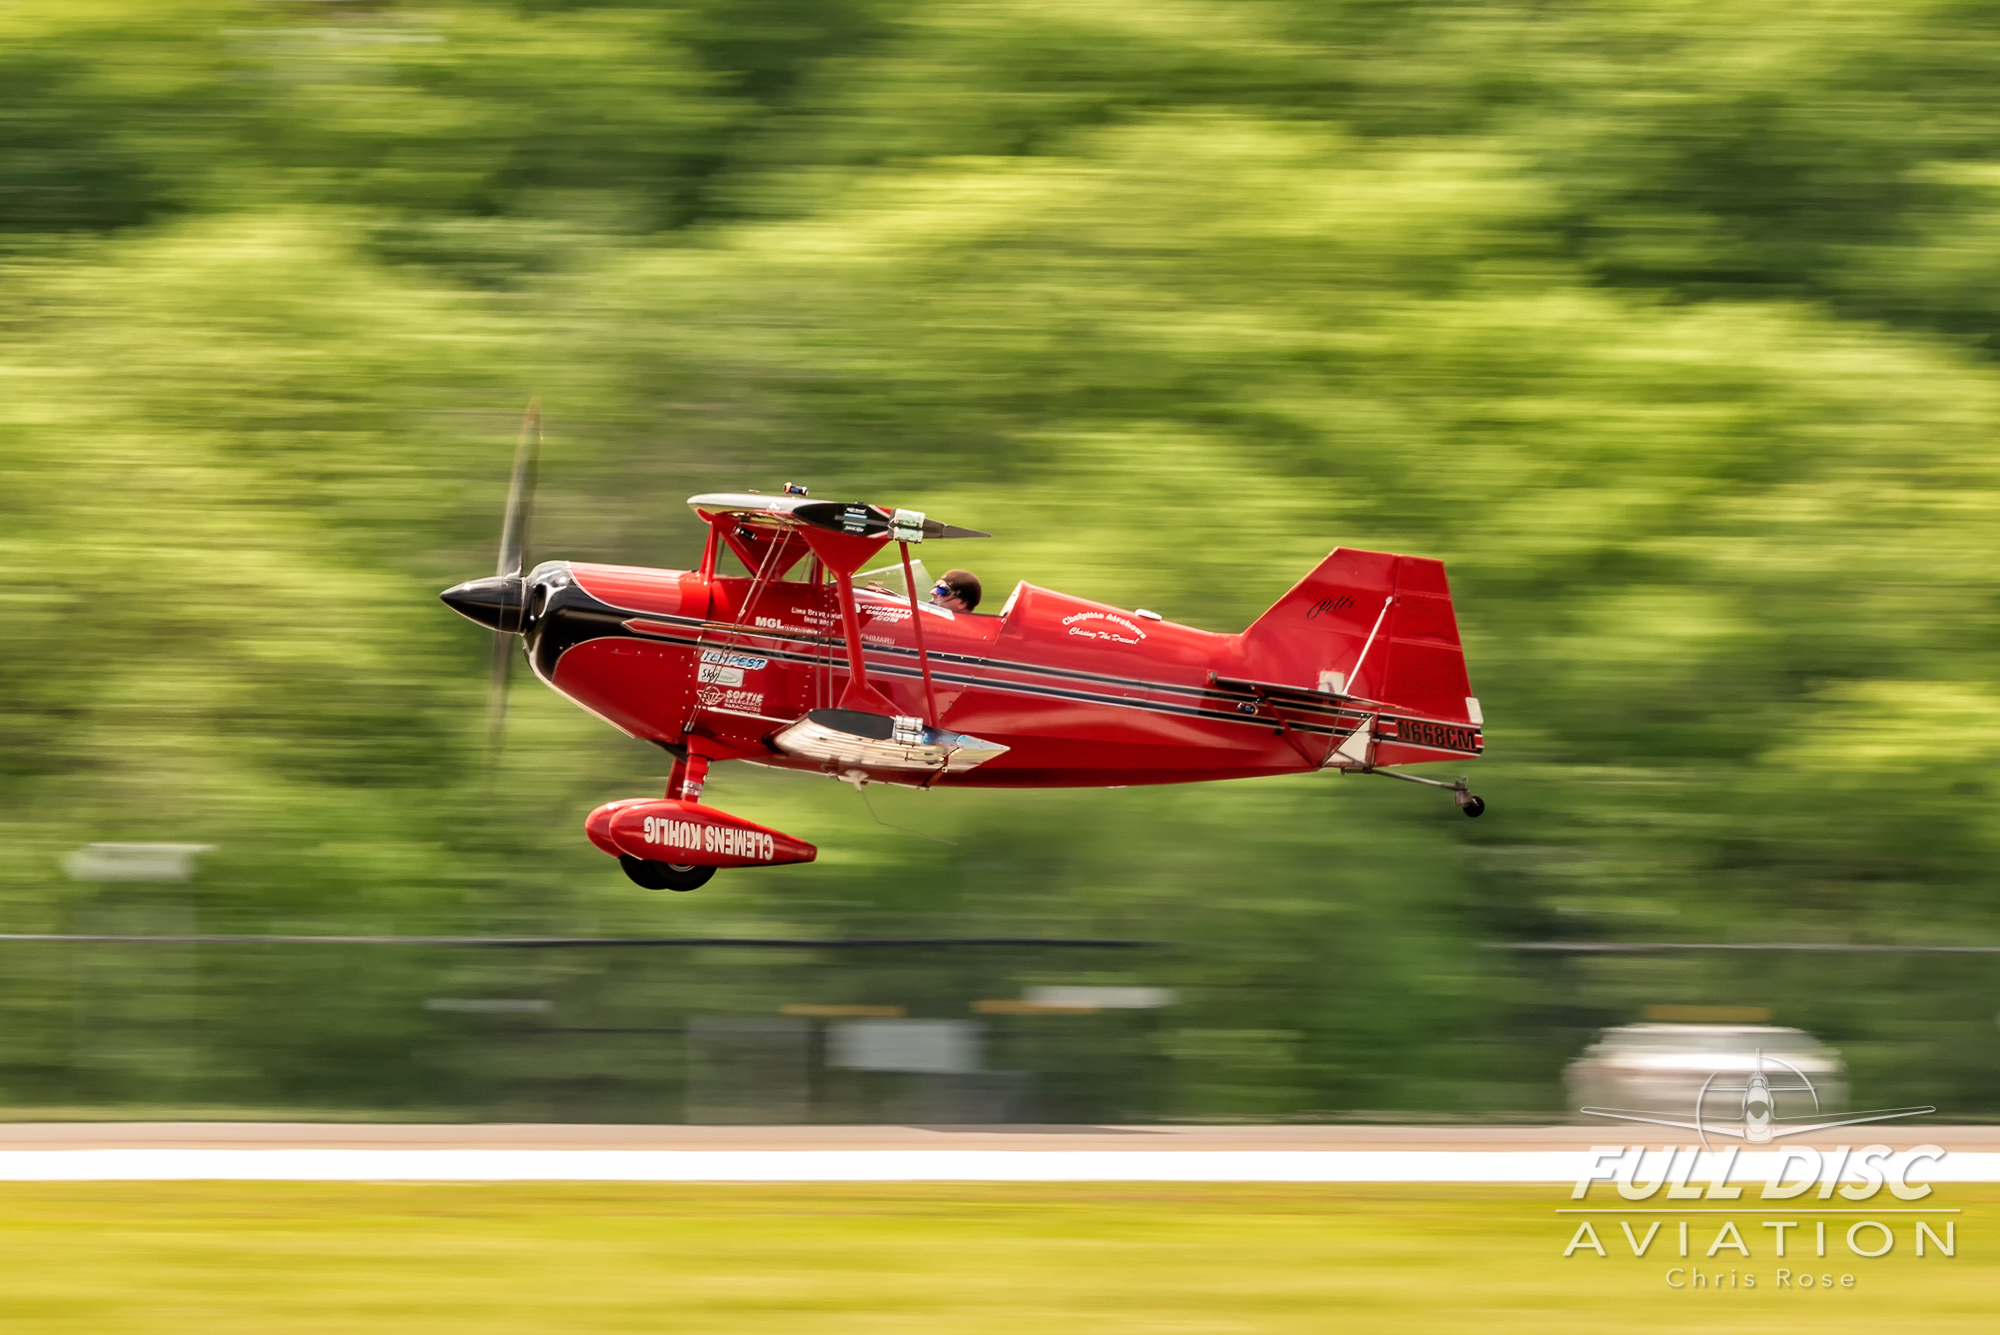 Manassas_FullDiscAviation_ChrisRose-May 19, 2019-03.jpg